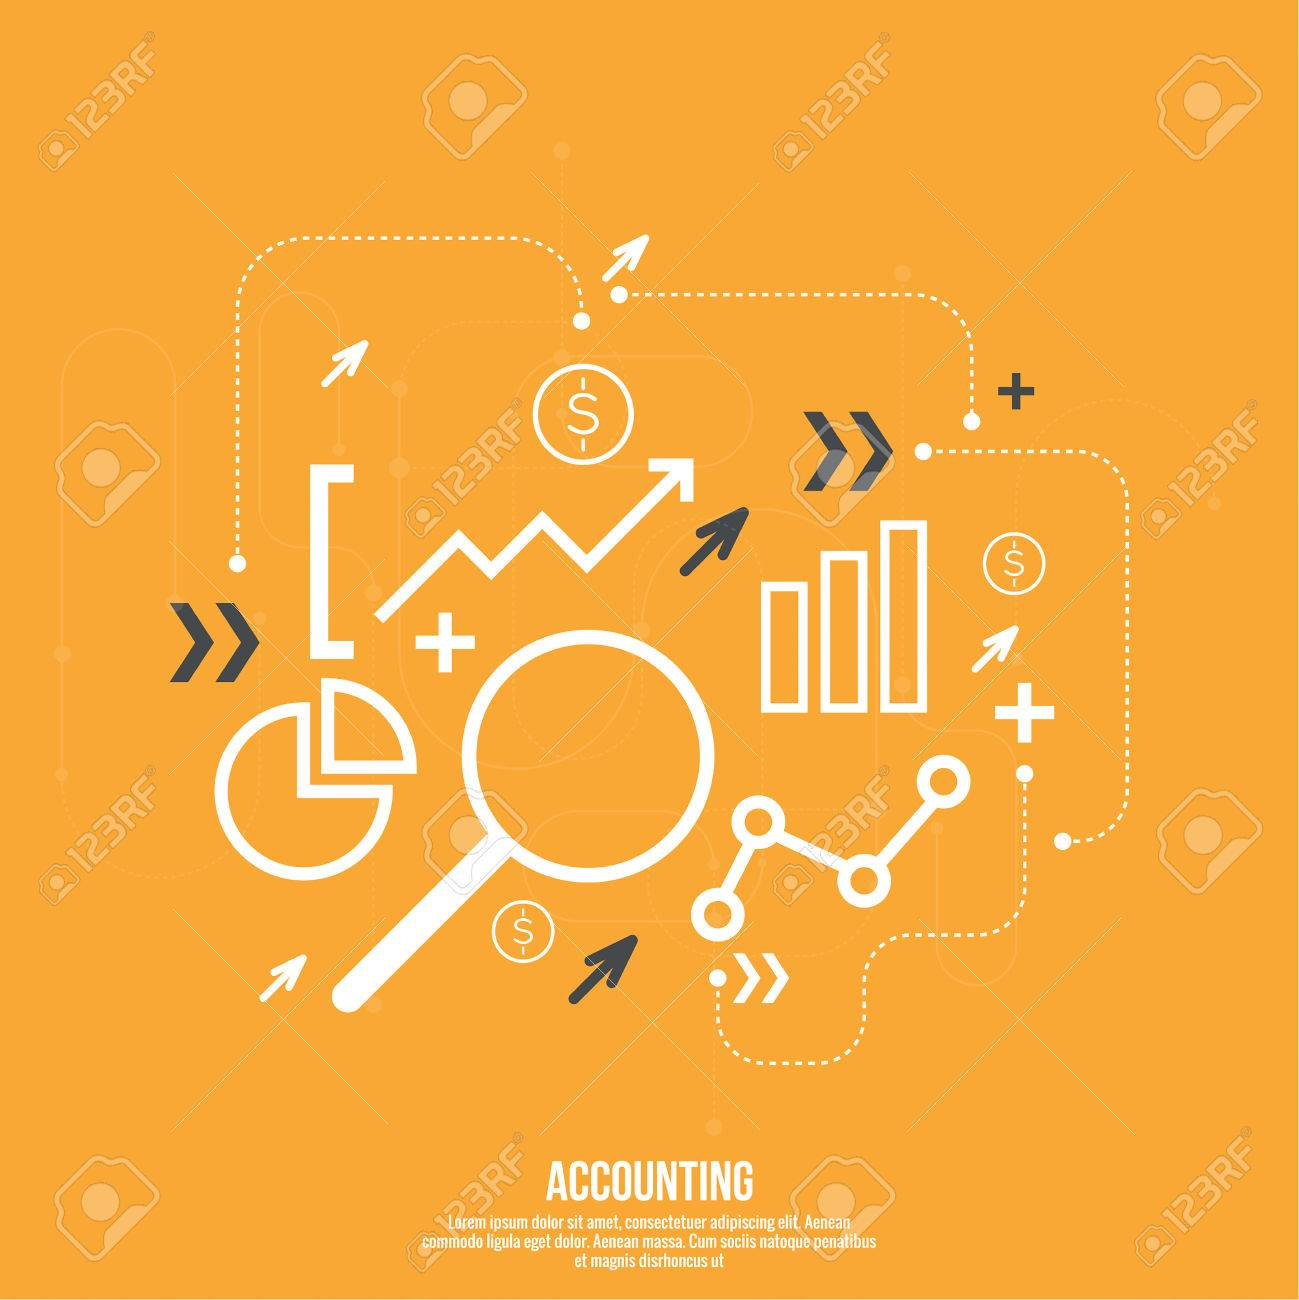 Analysis and Financial Management Report and Forecast. Stock market indicators and statistics data. - 45220251